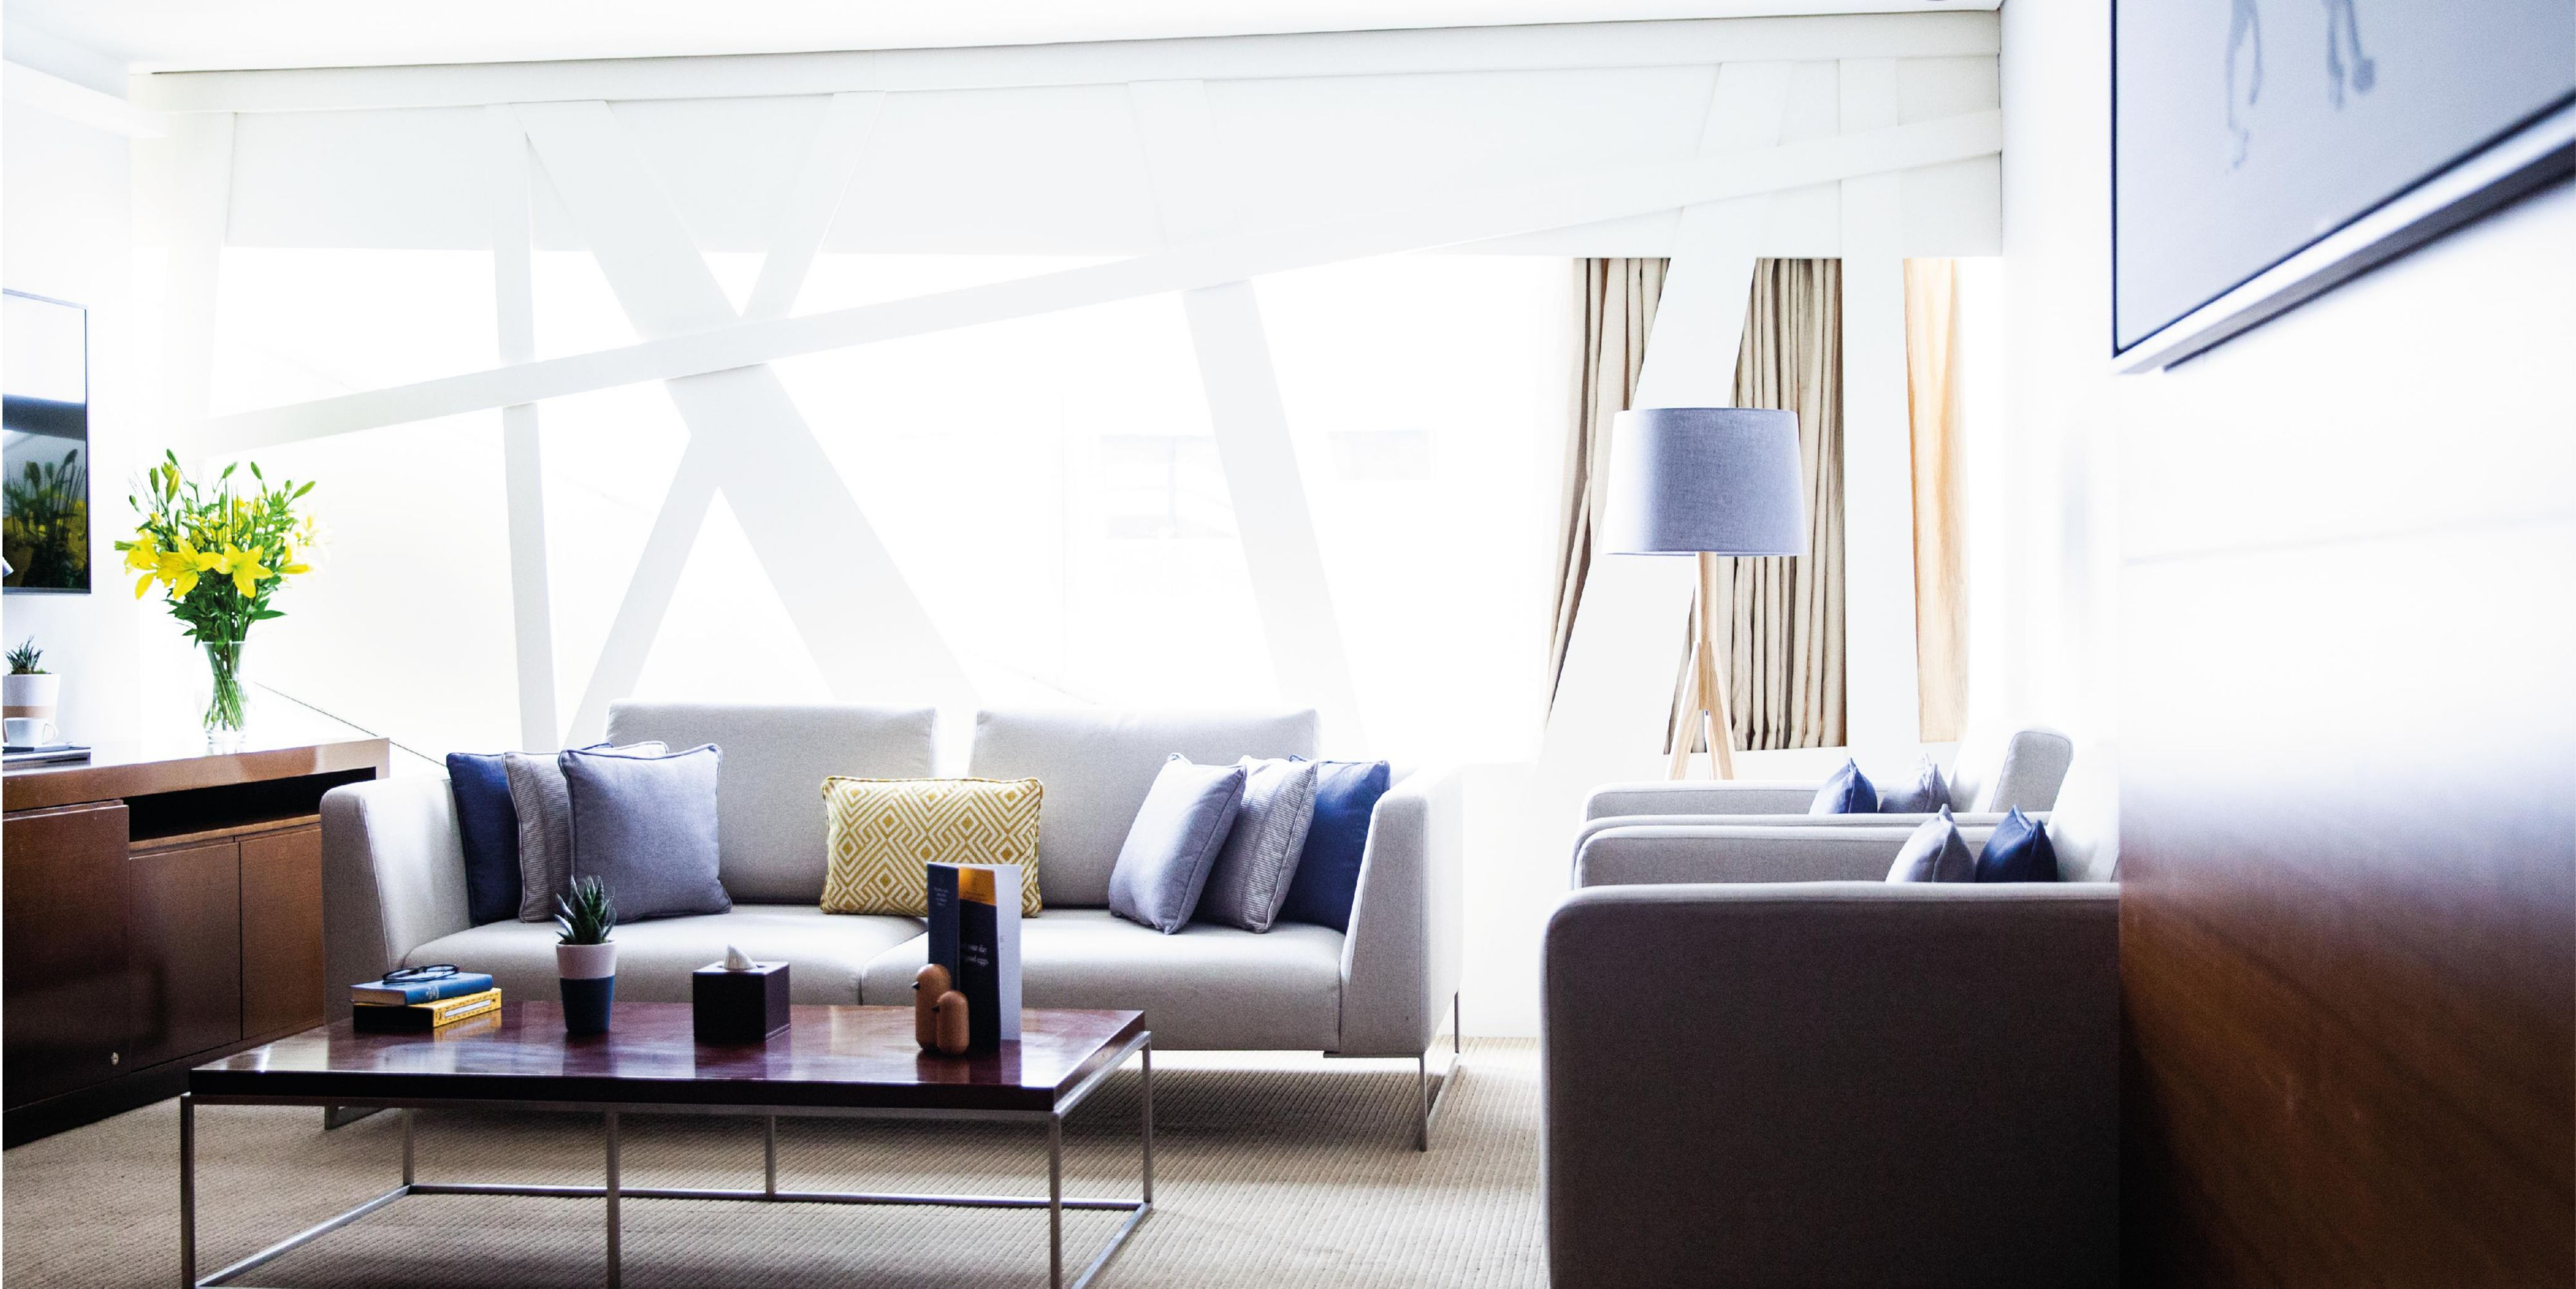 Accessible Premiere Suite with views of Sheikh Zayed Road